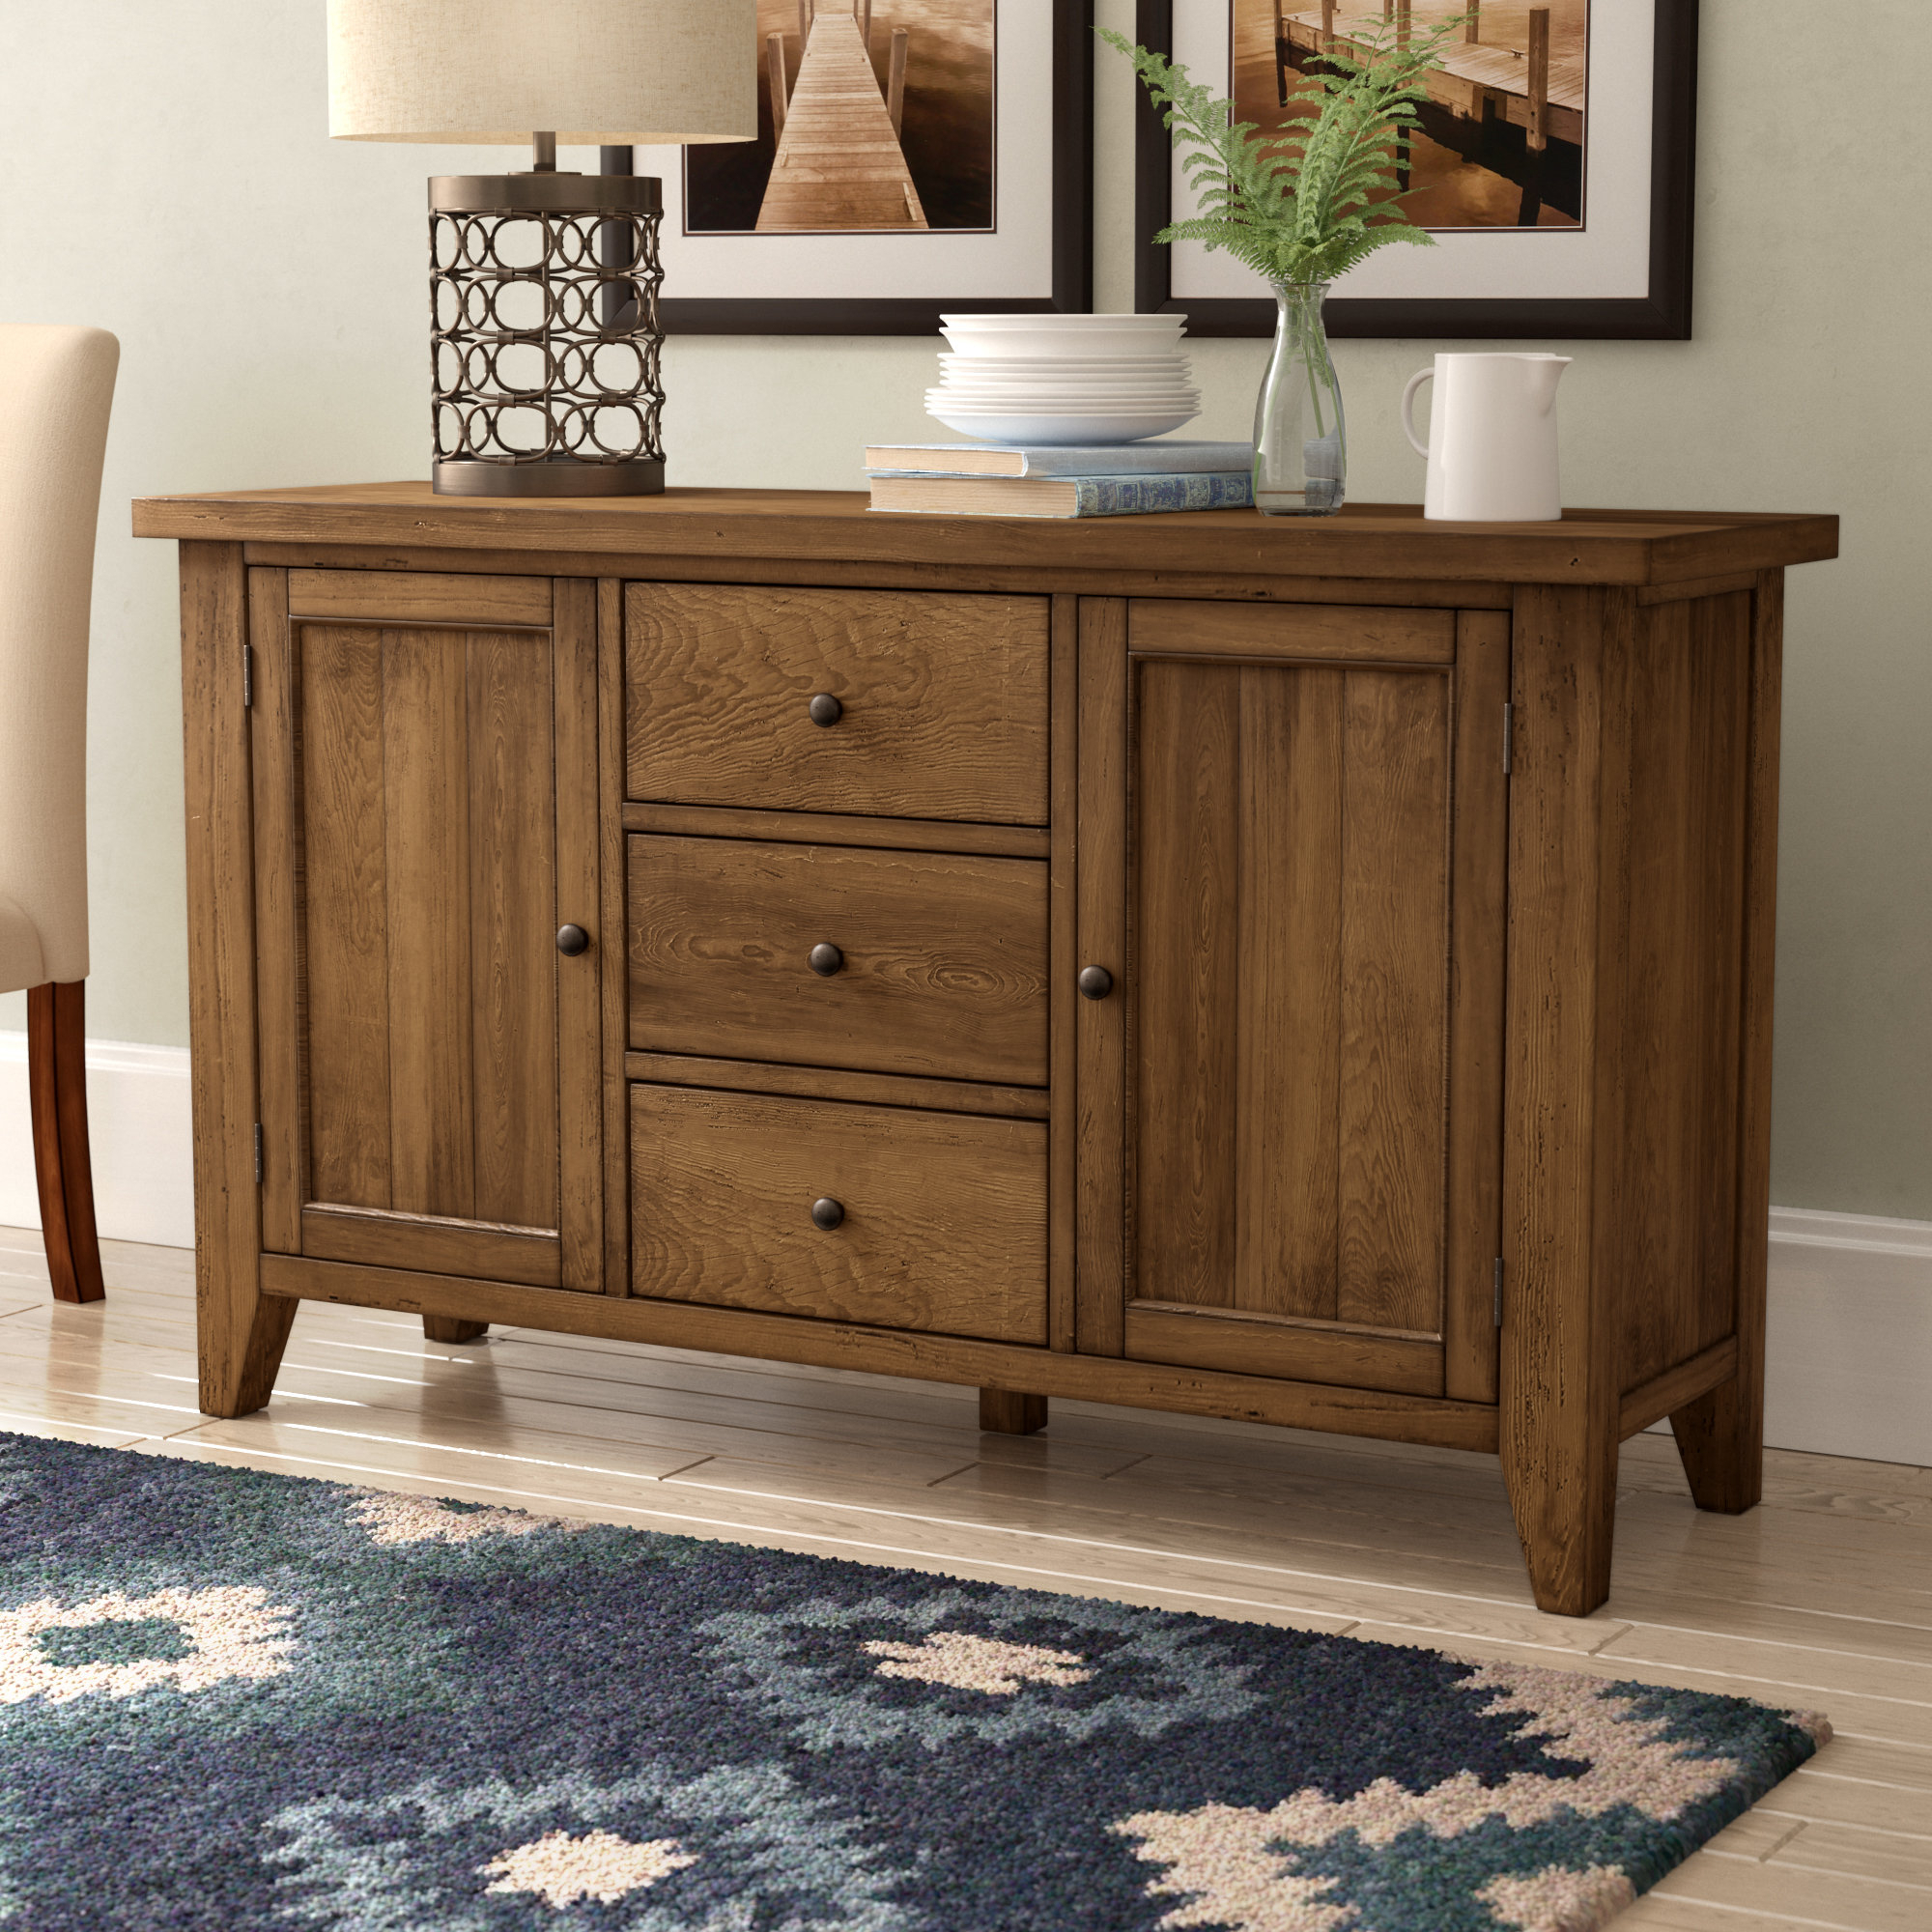 Warkentin Sideboard Intended For Widely Used Sayles Sideboards (View 4 of 20)